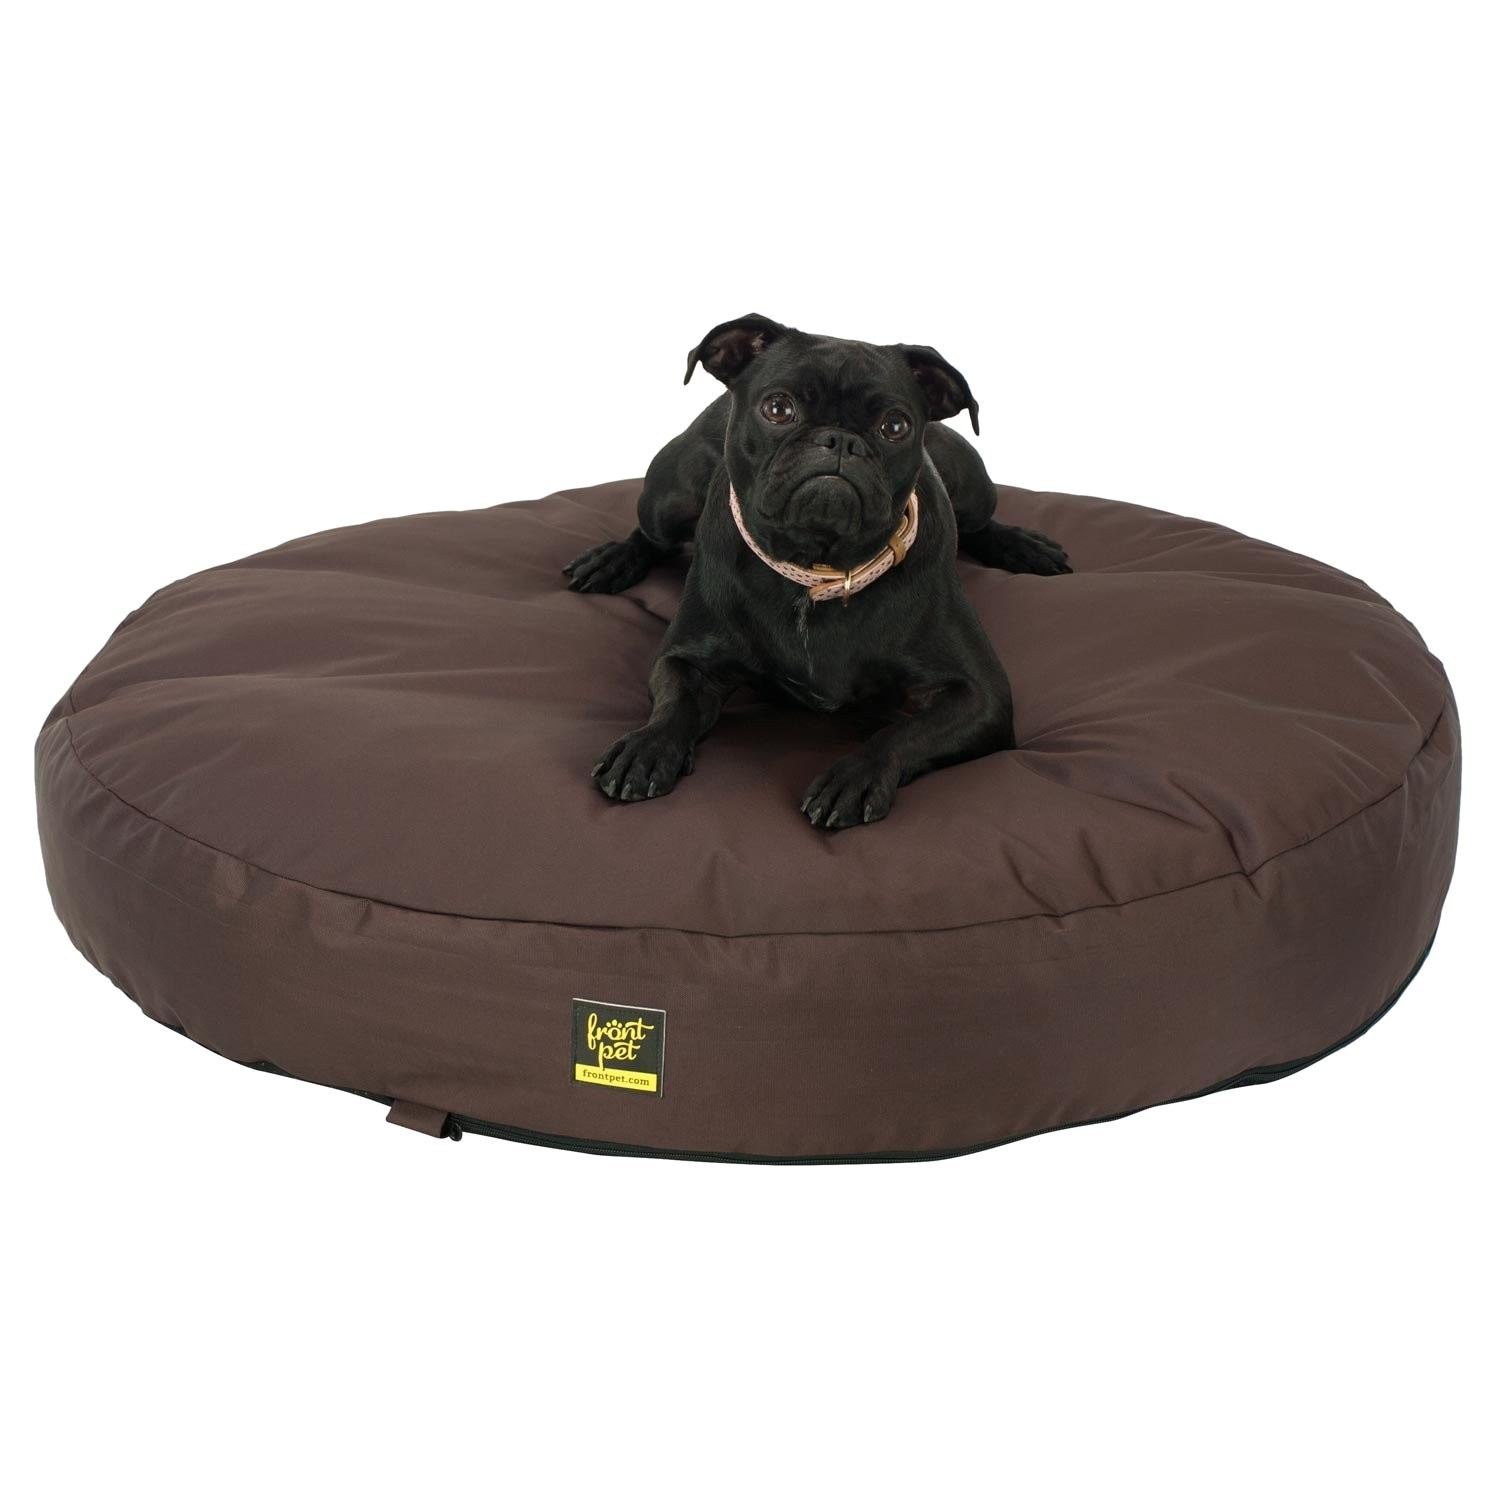 xl dog bed covers chew and dig proof by big ass dog company 67ad89639c494986